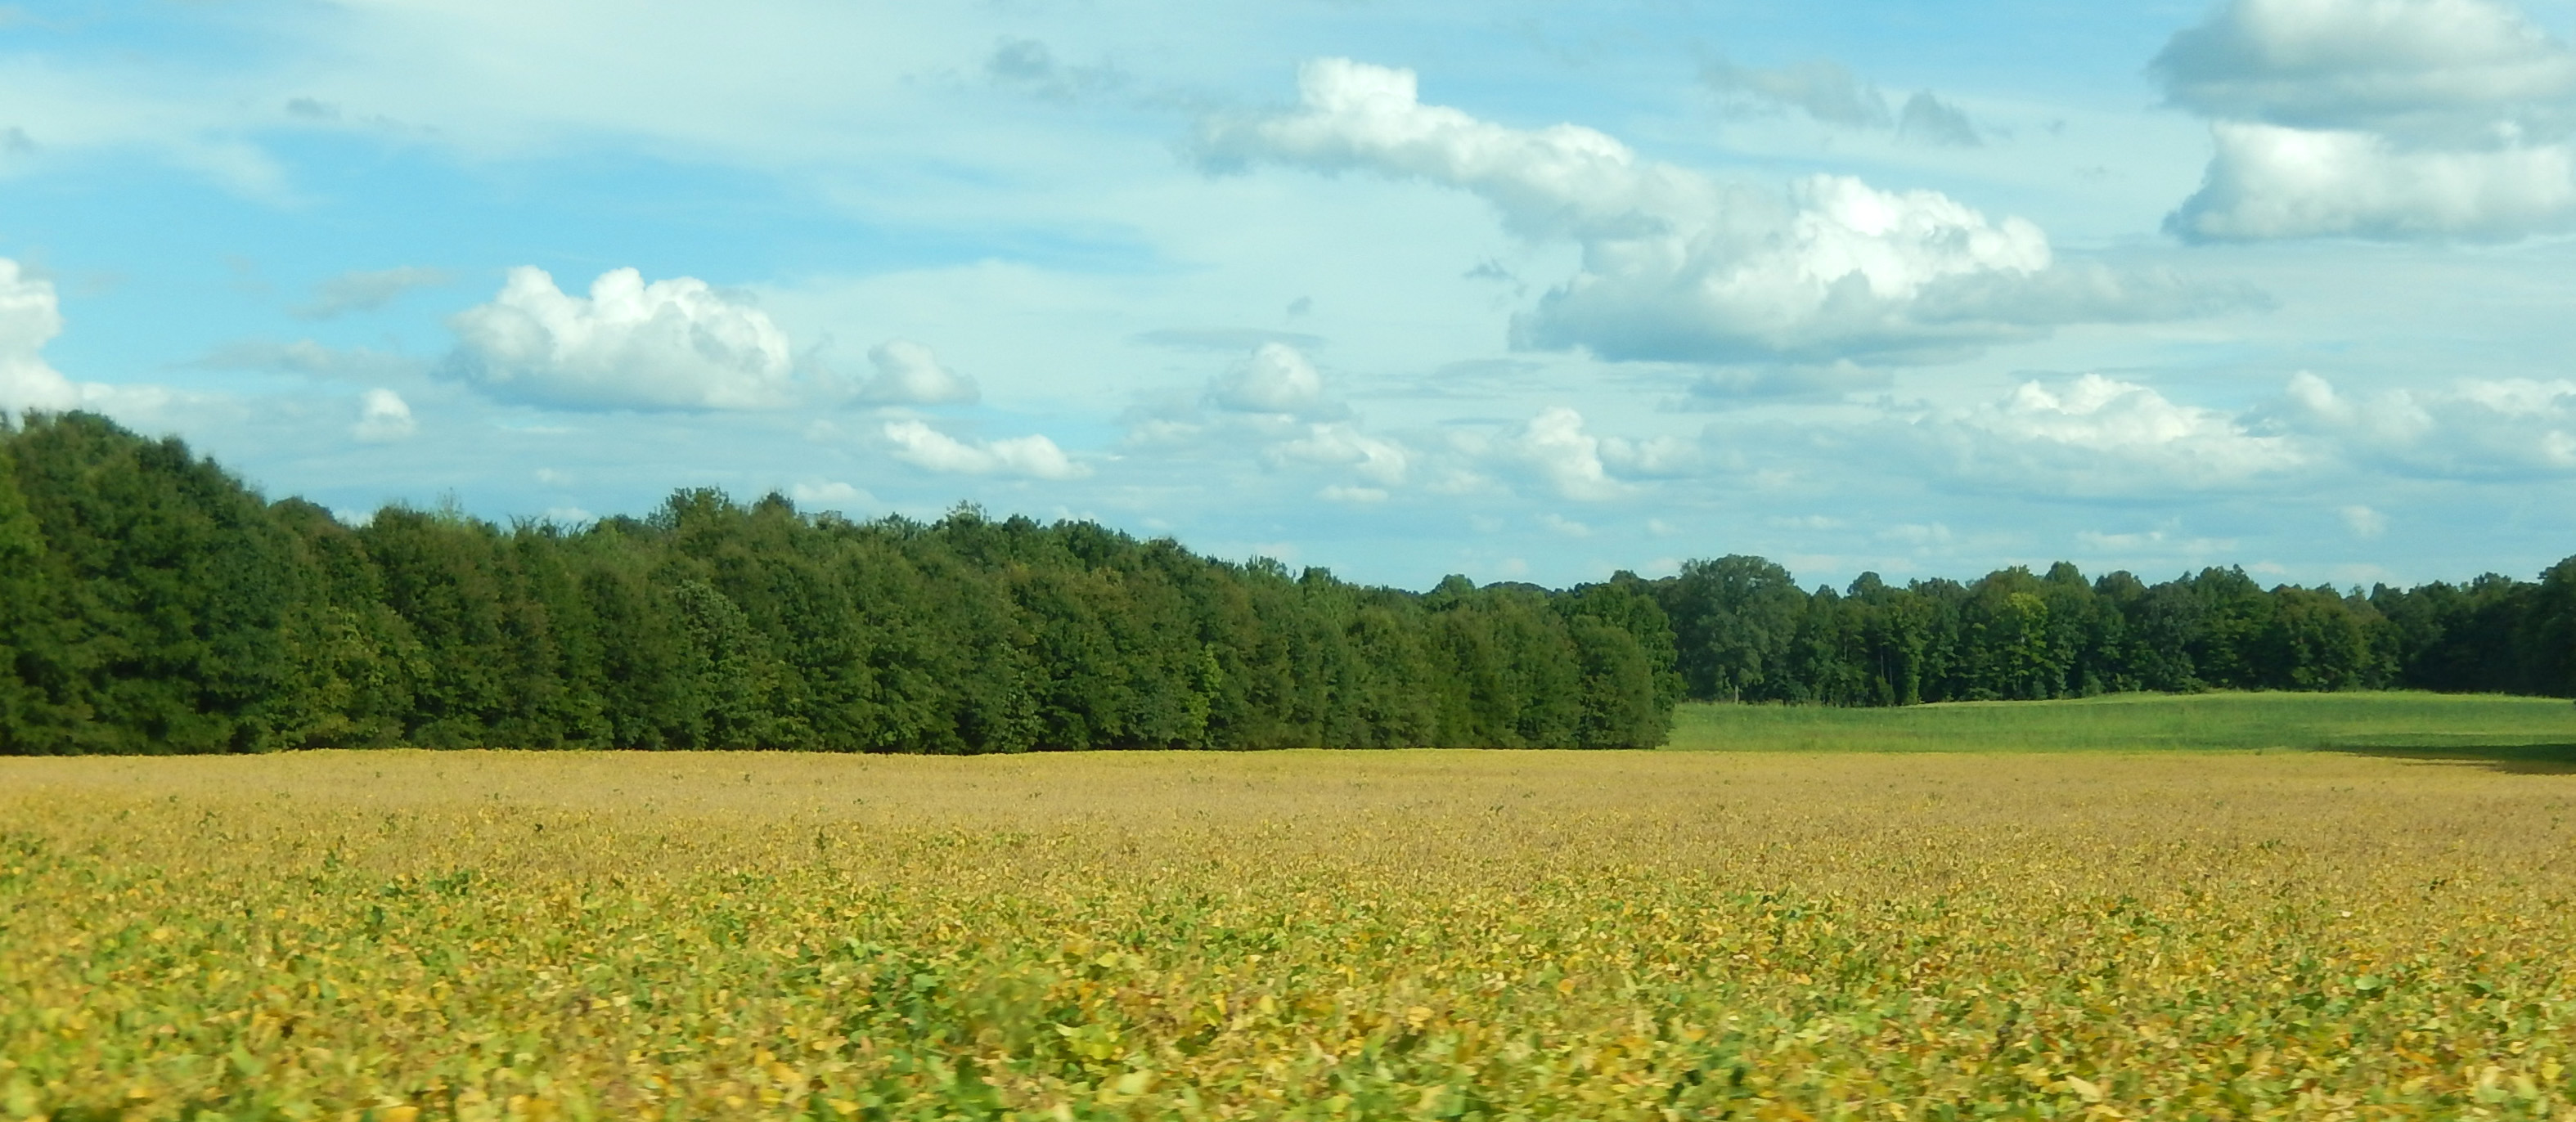 Soybean Field with Trees in the background